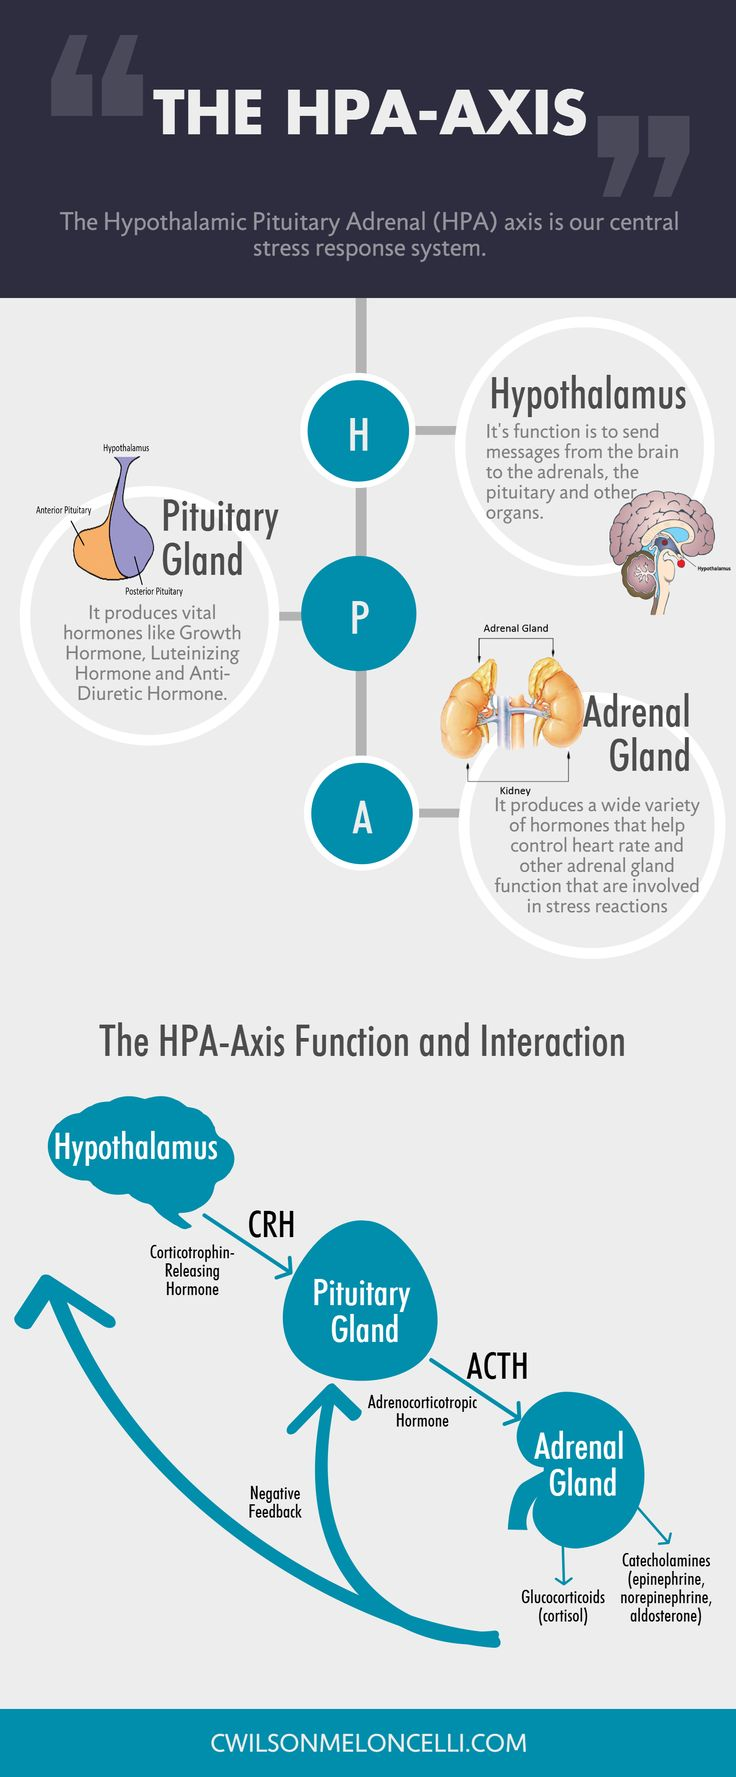 hpa-axis, hypothalamus, hypothalamus function, what is hypothalamus, pituitary gland, pituitary gland function, adrenal glands, adrenal gland function, stressors, The HPA-Axis and Stress, Hypothalamic Pituitary Adrenal Axis, Flow State, neurochemicals of flow state, excess cortisol, the hpa axis infographi...Type 1~~~